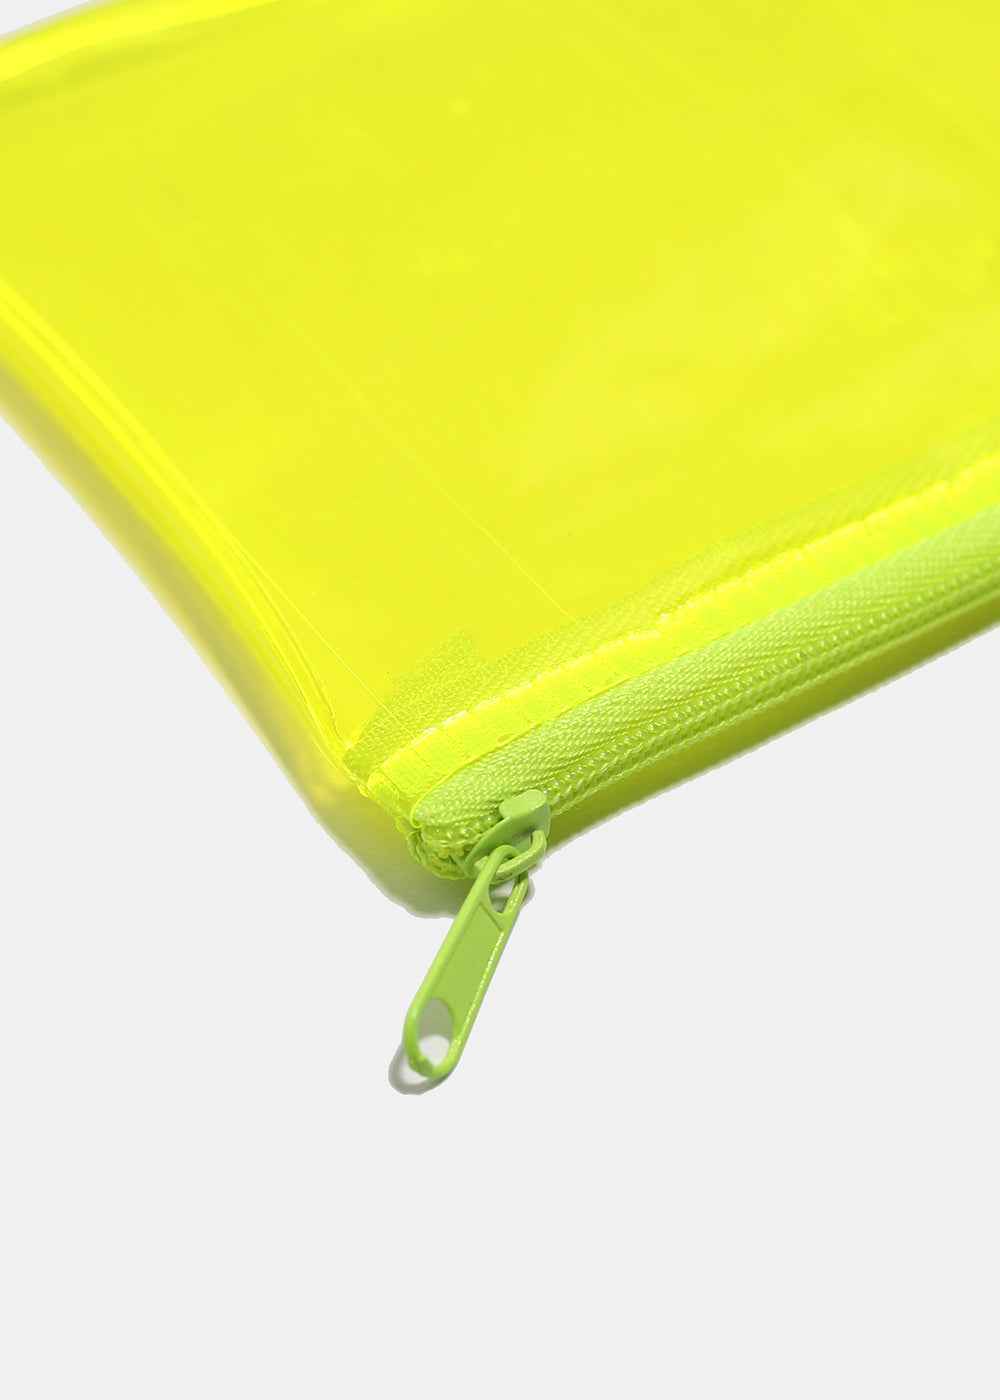 Translucent Zippered Pouch